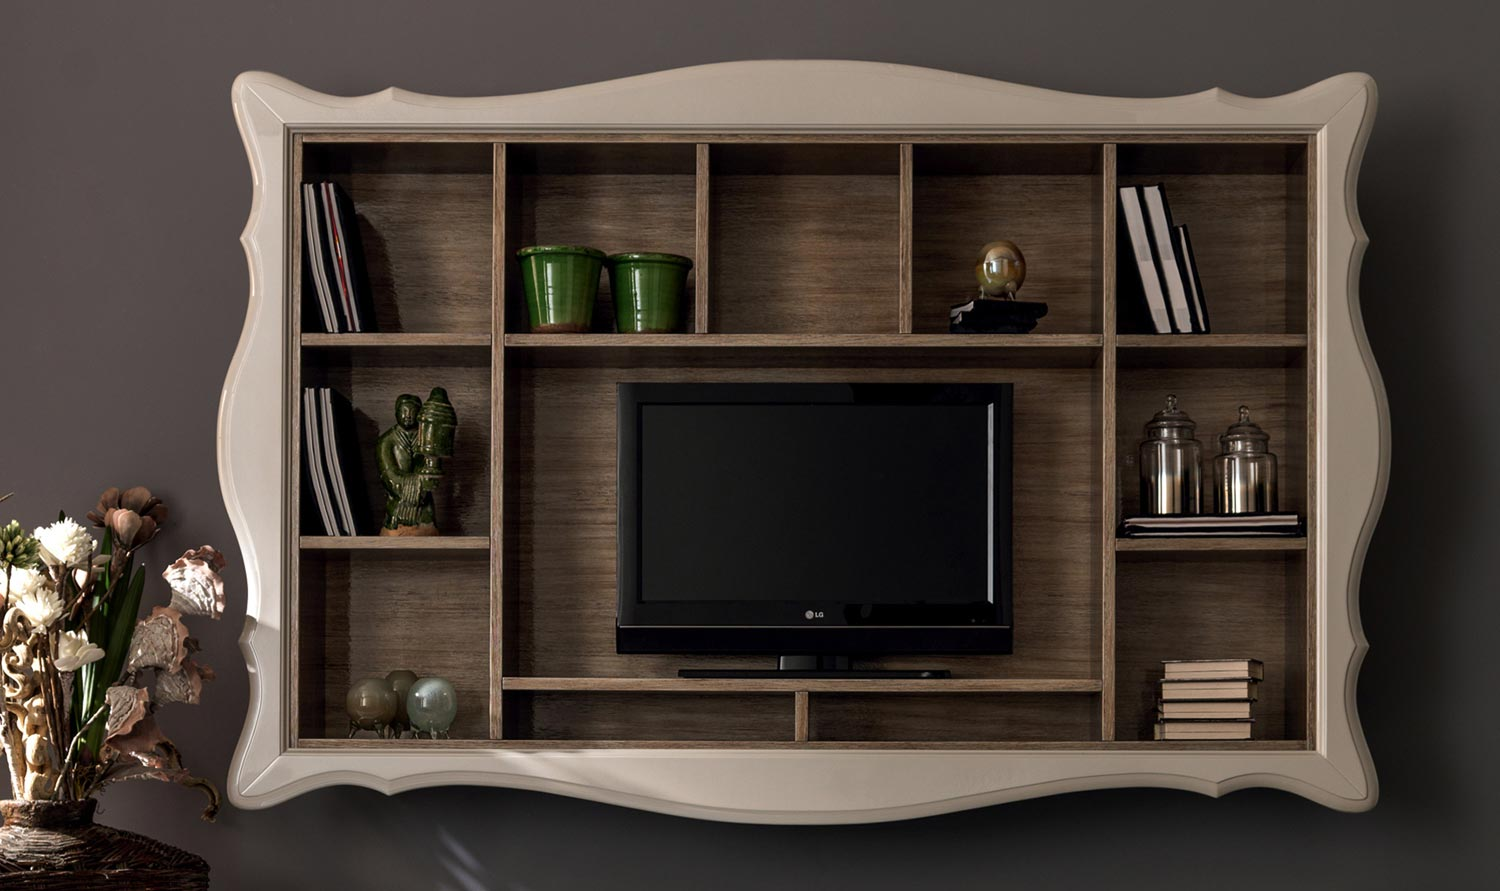 alice mueble modular de pared con soporte para tv by